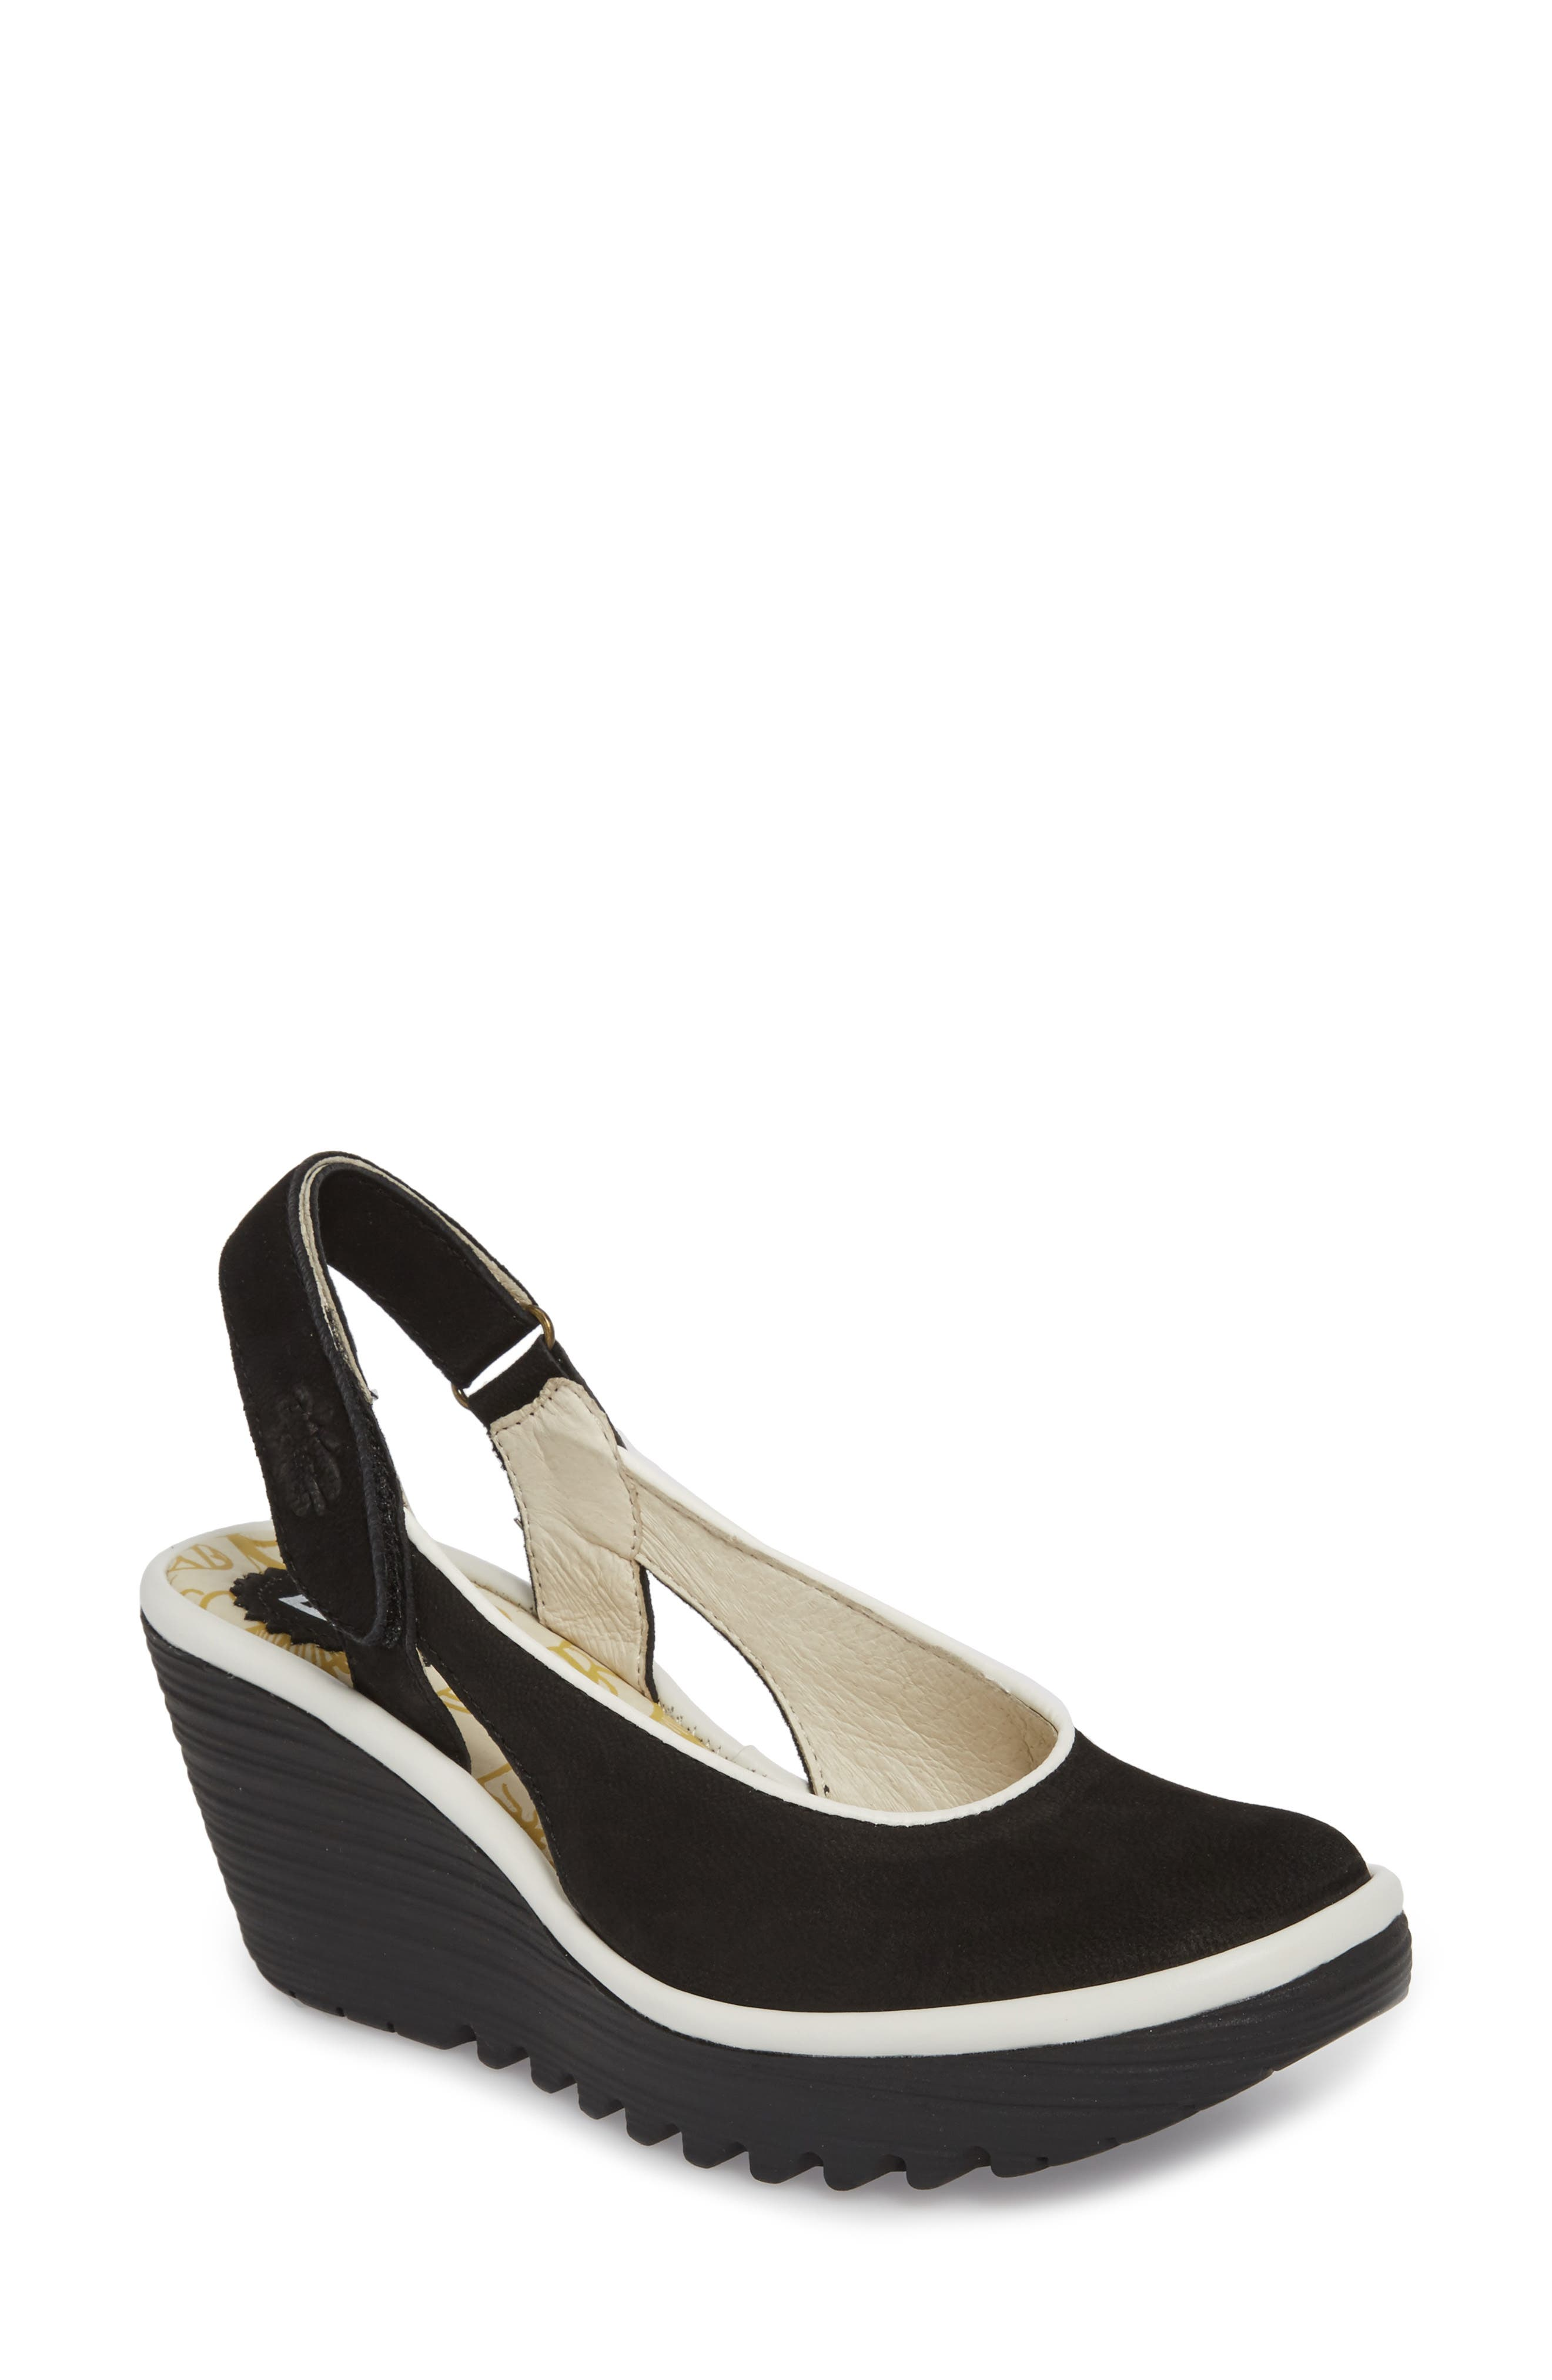 Yipi Wedge Sandal,                         Main,                         color, BLACK/ OFF WHITE MIX LEATHER